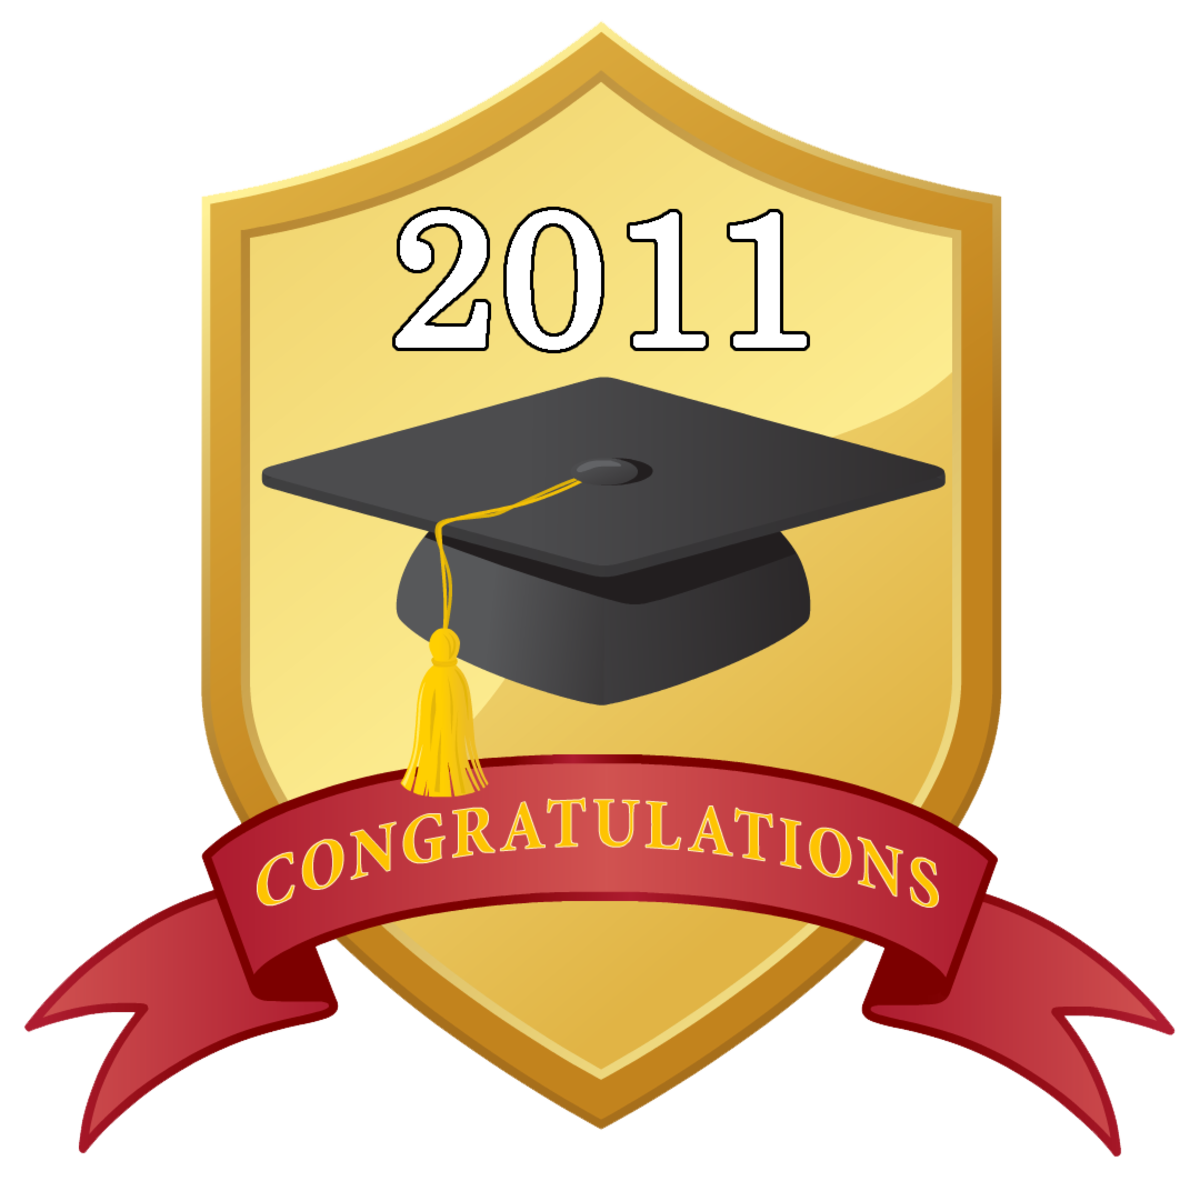 graduation scrapbook embellishment: 2011 shield with graduation cap